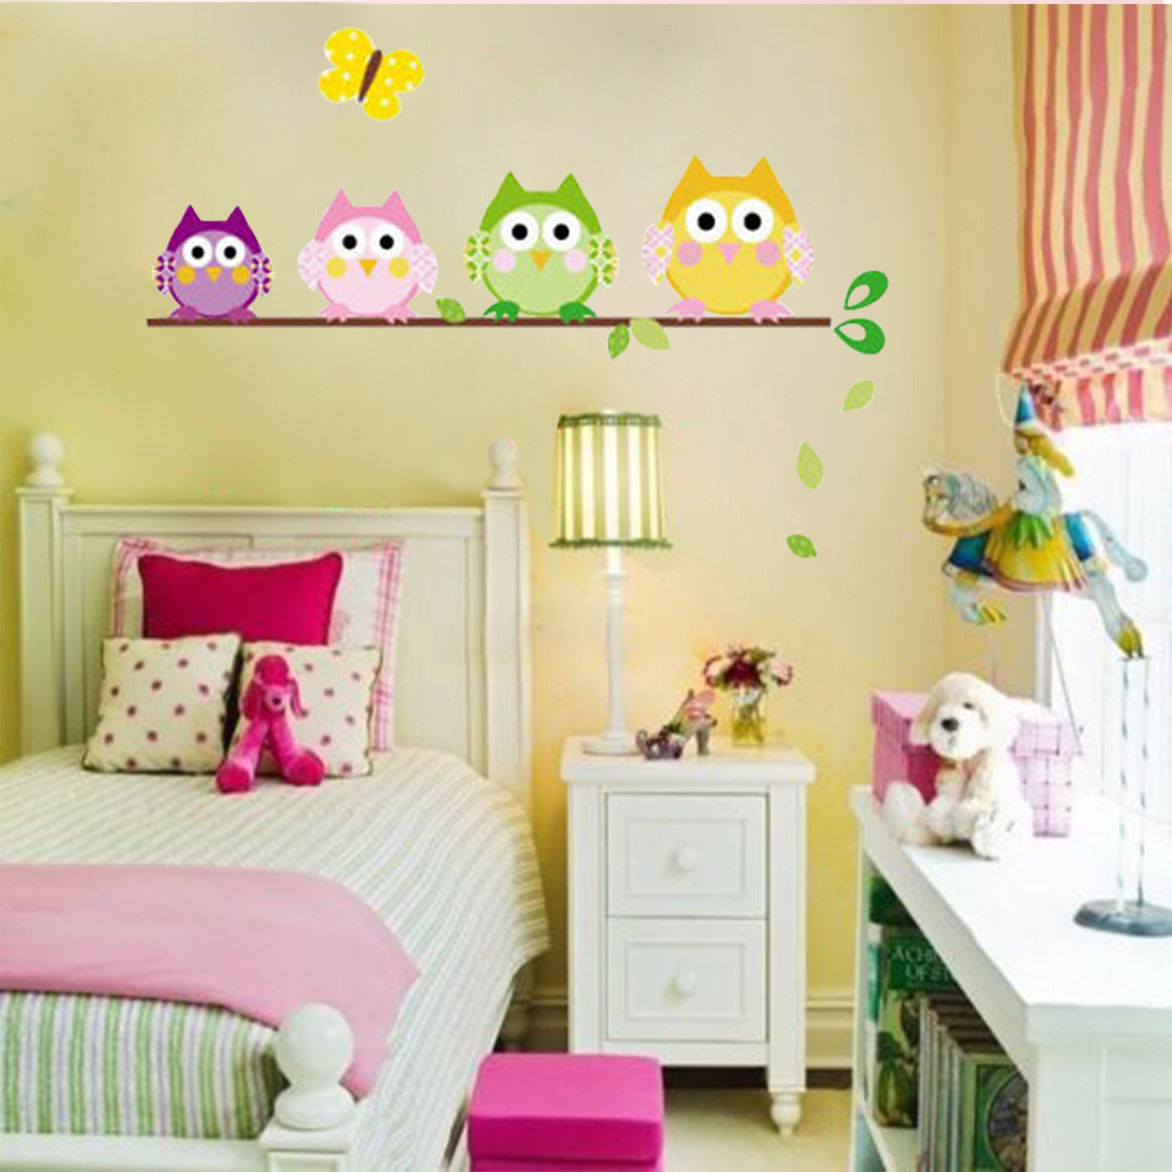 4 Owls Butterfly Kids Nursery Decals Wall Sticker Home Decor Vinyl ...